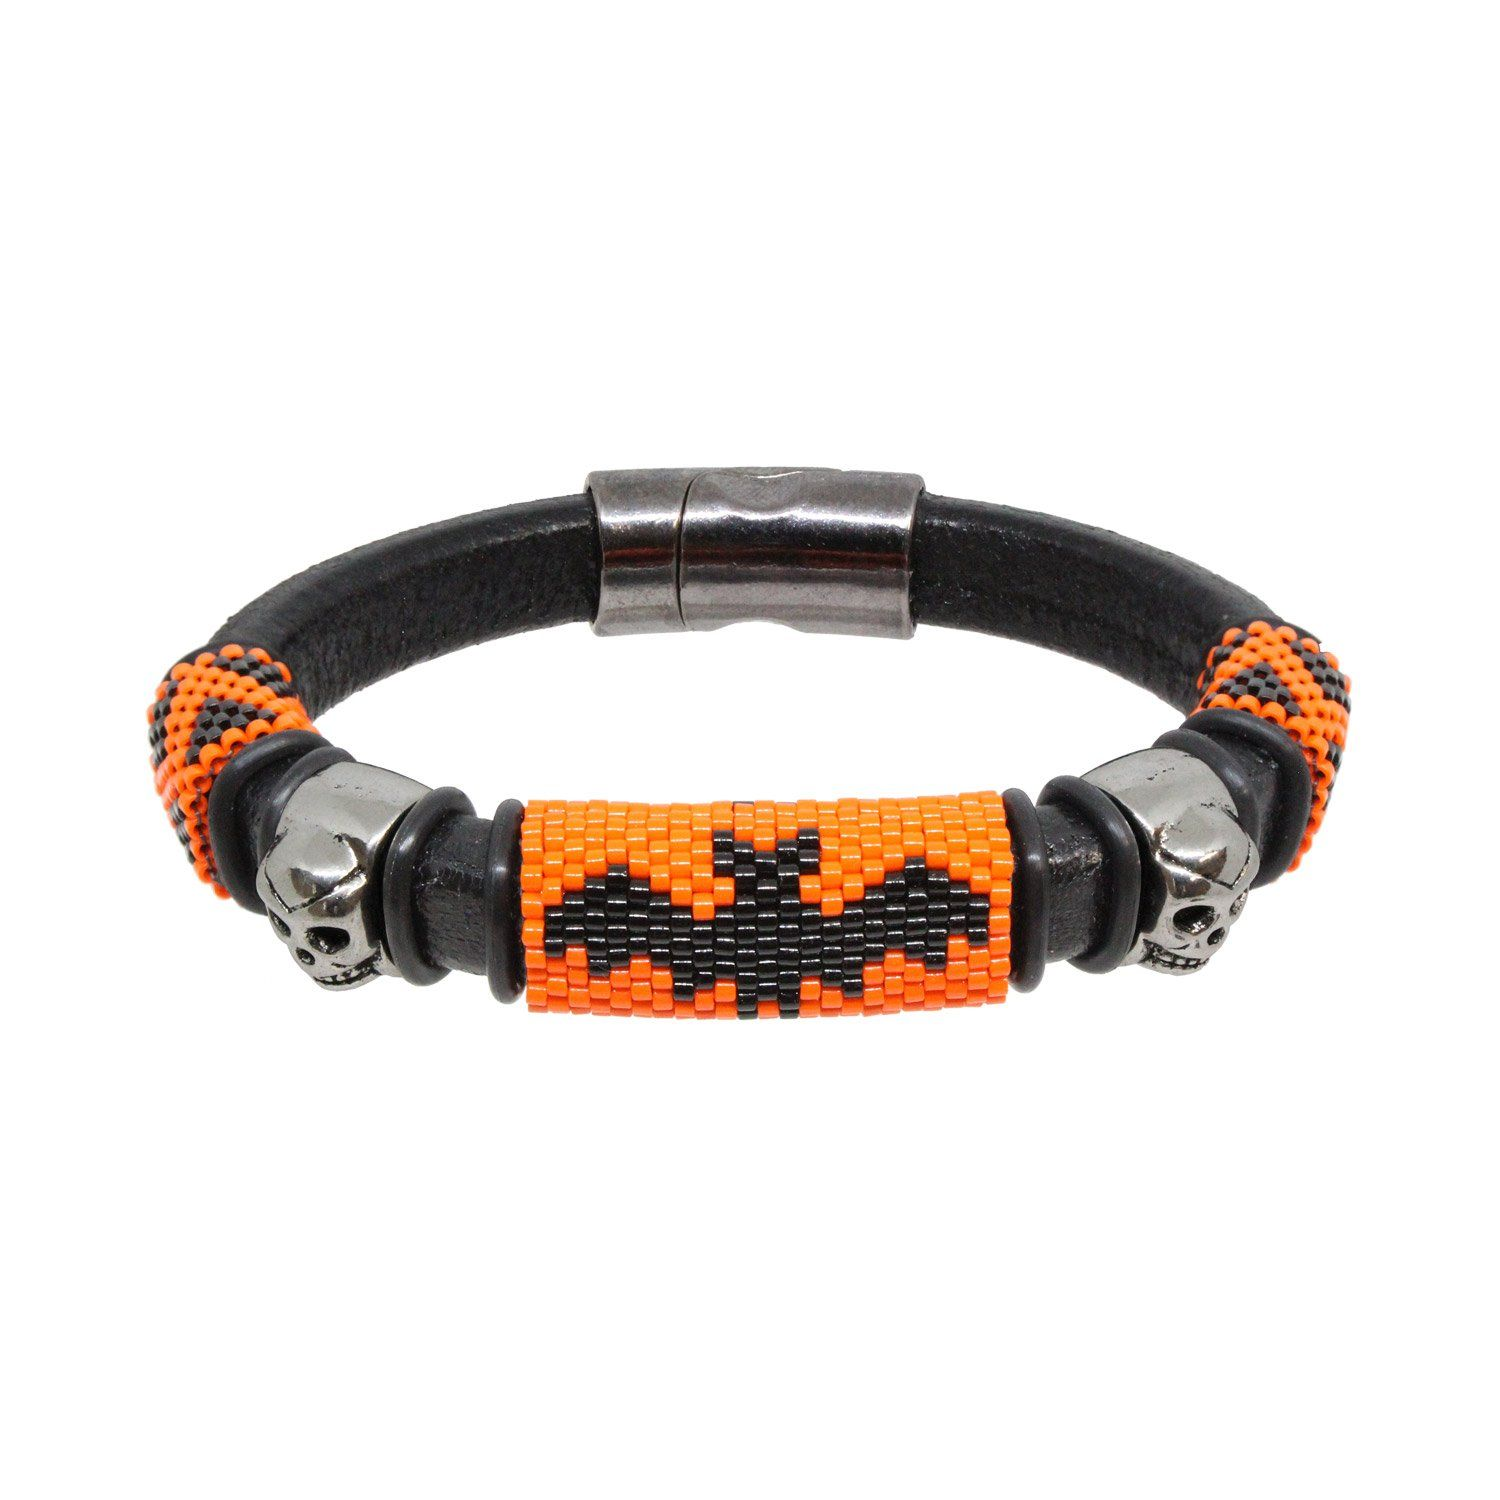 """🎃 Scary Halloween Leather Bracelet 🦇 has a set of three decorative handmade black and orange halloween-themed peyote stitch sliders. The main slider has a large bat image, while the two outer sliders with the zig zag pattern perhaps resemble jagged teeth. To complete ths """"scary"""" look, there are two silver skulls - one on each side of the bat centerpiece. Each slider is collared with black rubber rings to keep the sliders in place and add a bit of decoration. The leather cord is genuine Regaliz"""